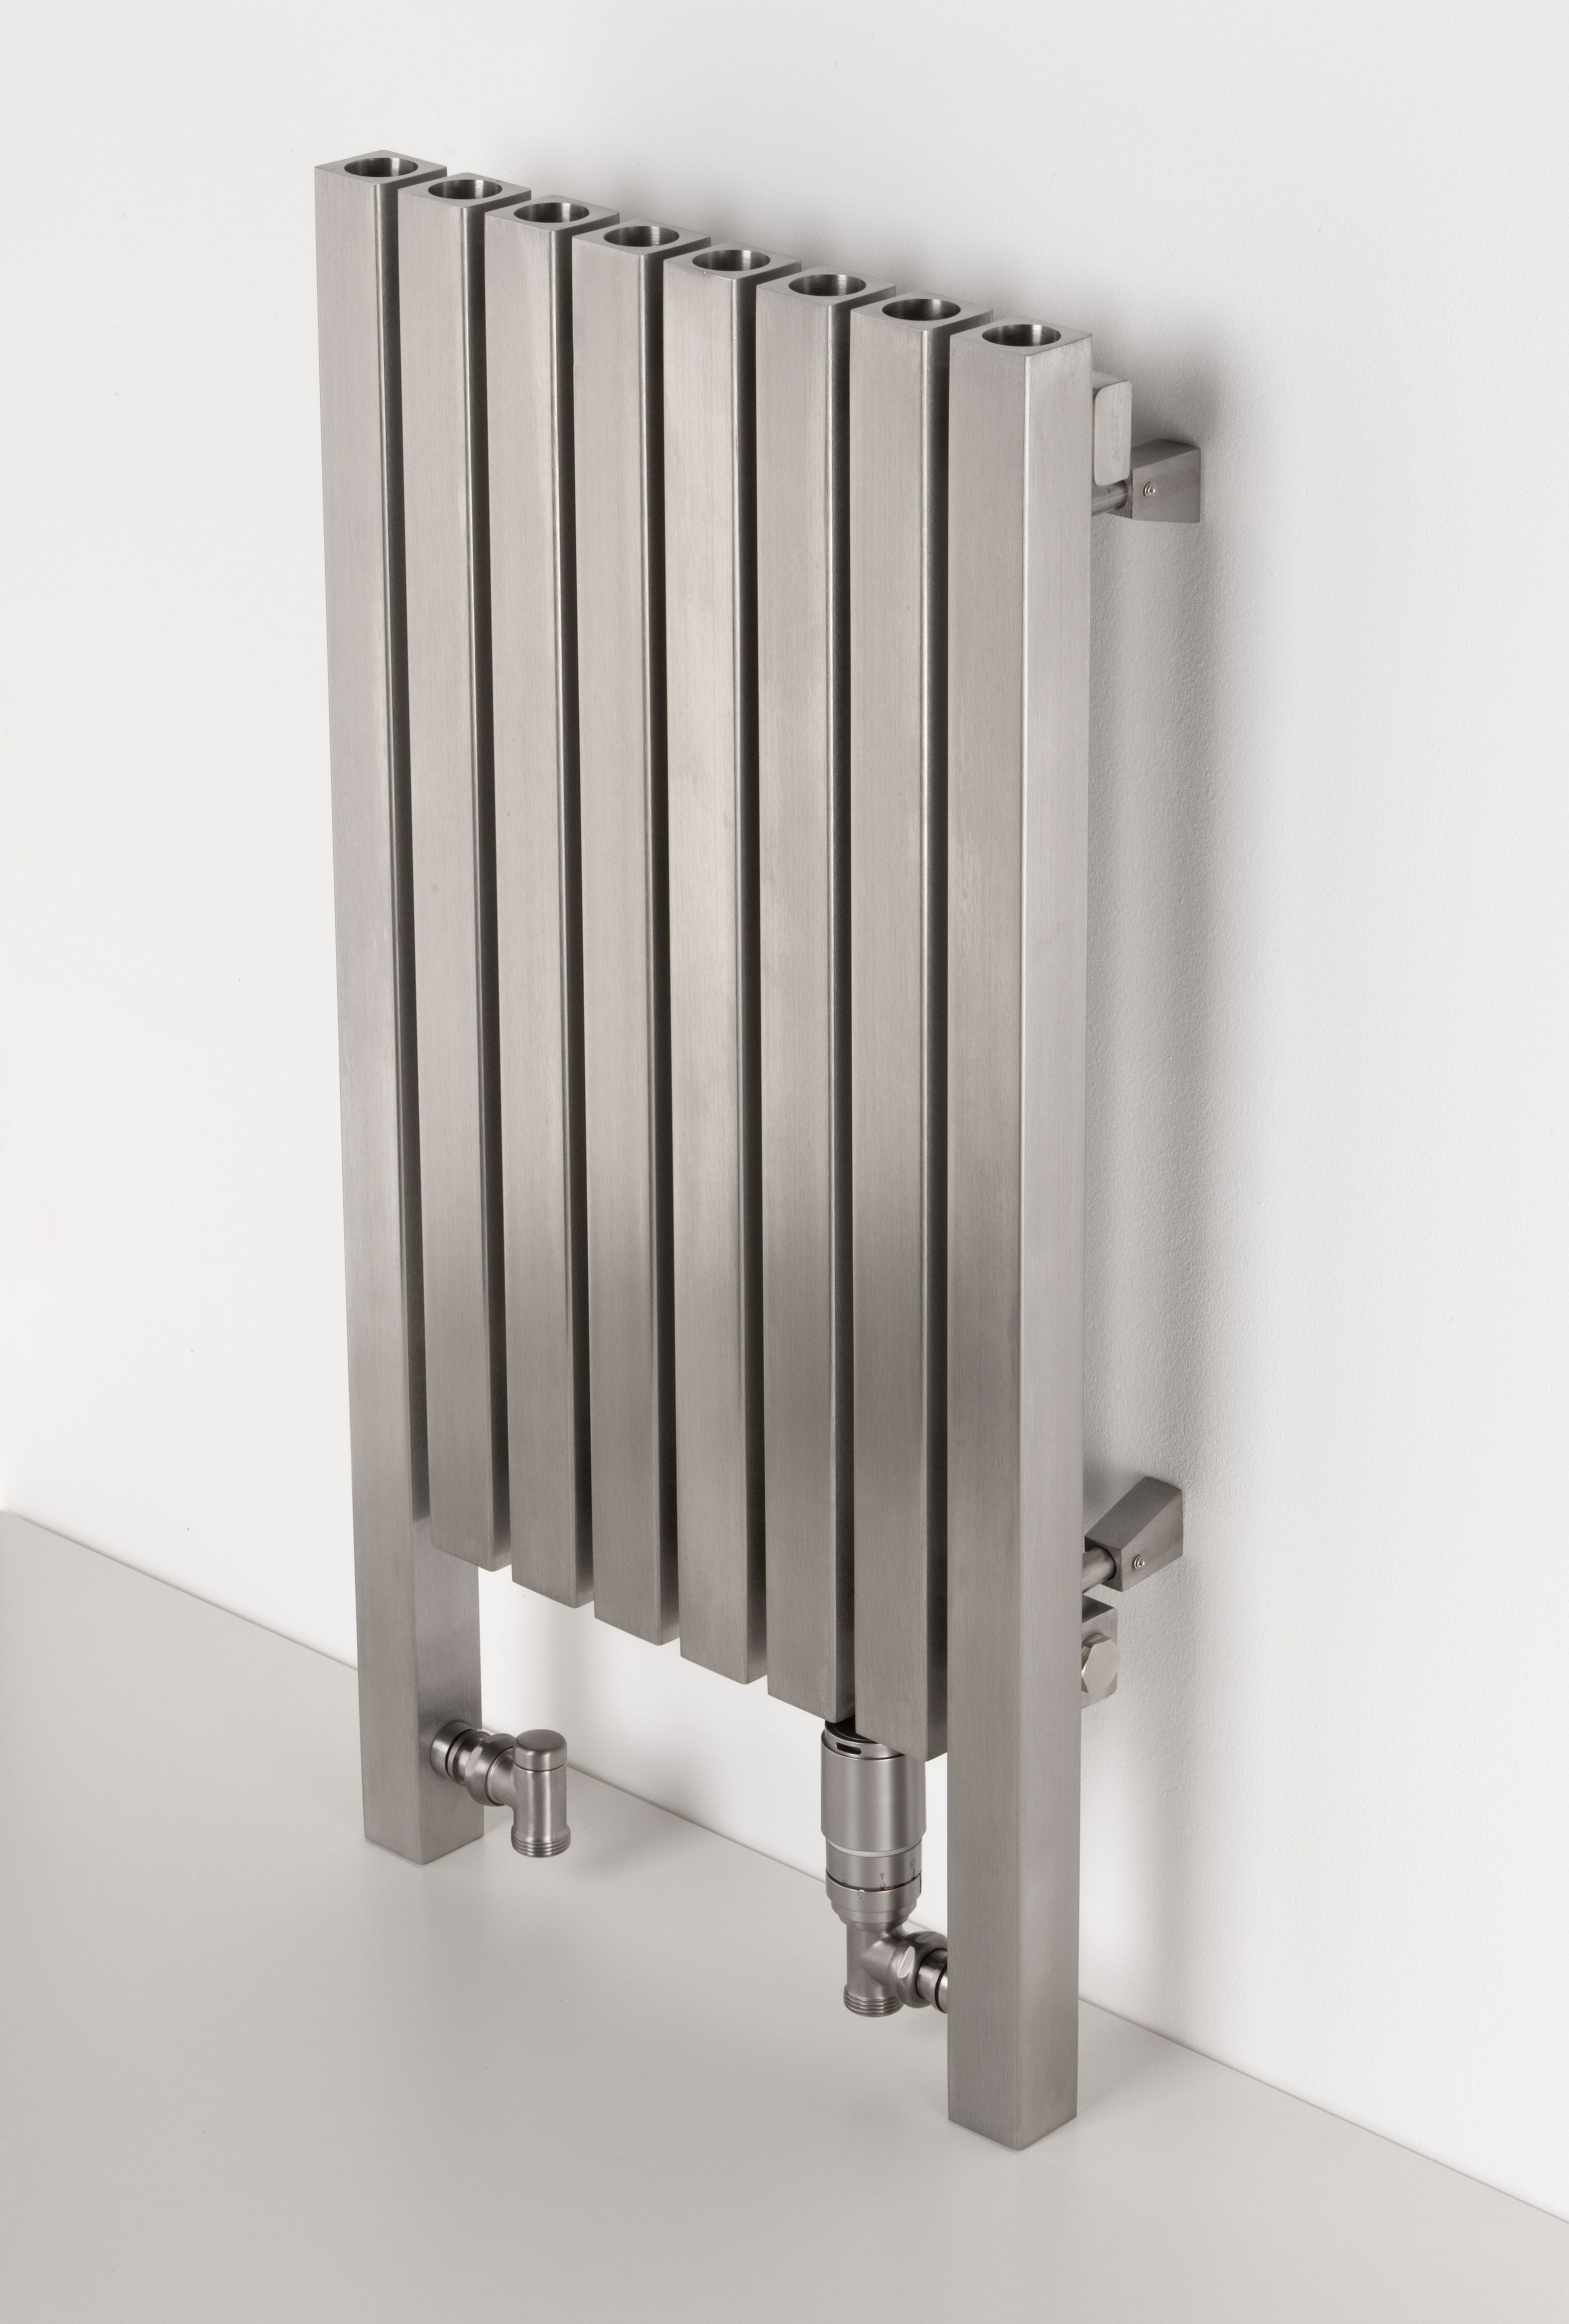 aee7c0532ddd The Aeon Dalya-L stainless steel designer radiator is simple   elegant  rolled into one